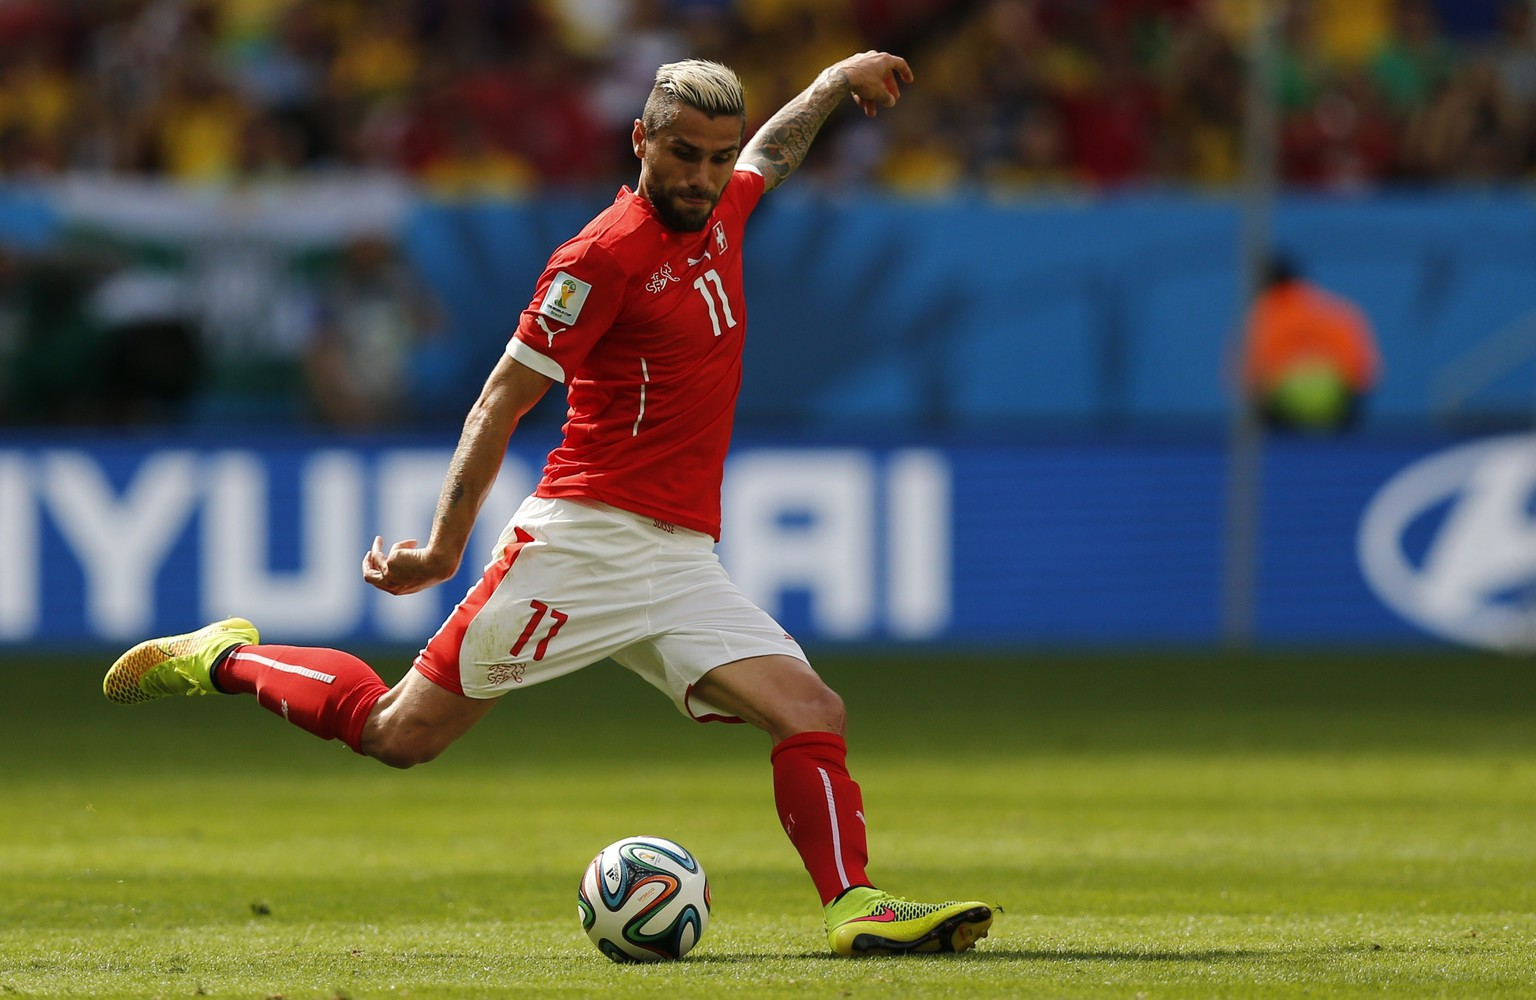 Switzerland's Valon Behrami  kicks the ball during their 2014 World Cup Group E soccer match against Ecuador at the Brasilia national stadium in Brasilia, June 15, 2014. REUTERS/Ueslei Marcelino (BRAZIL  - Tags: SOCCER SPORT WORLD CUP)